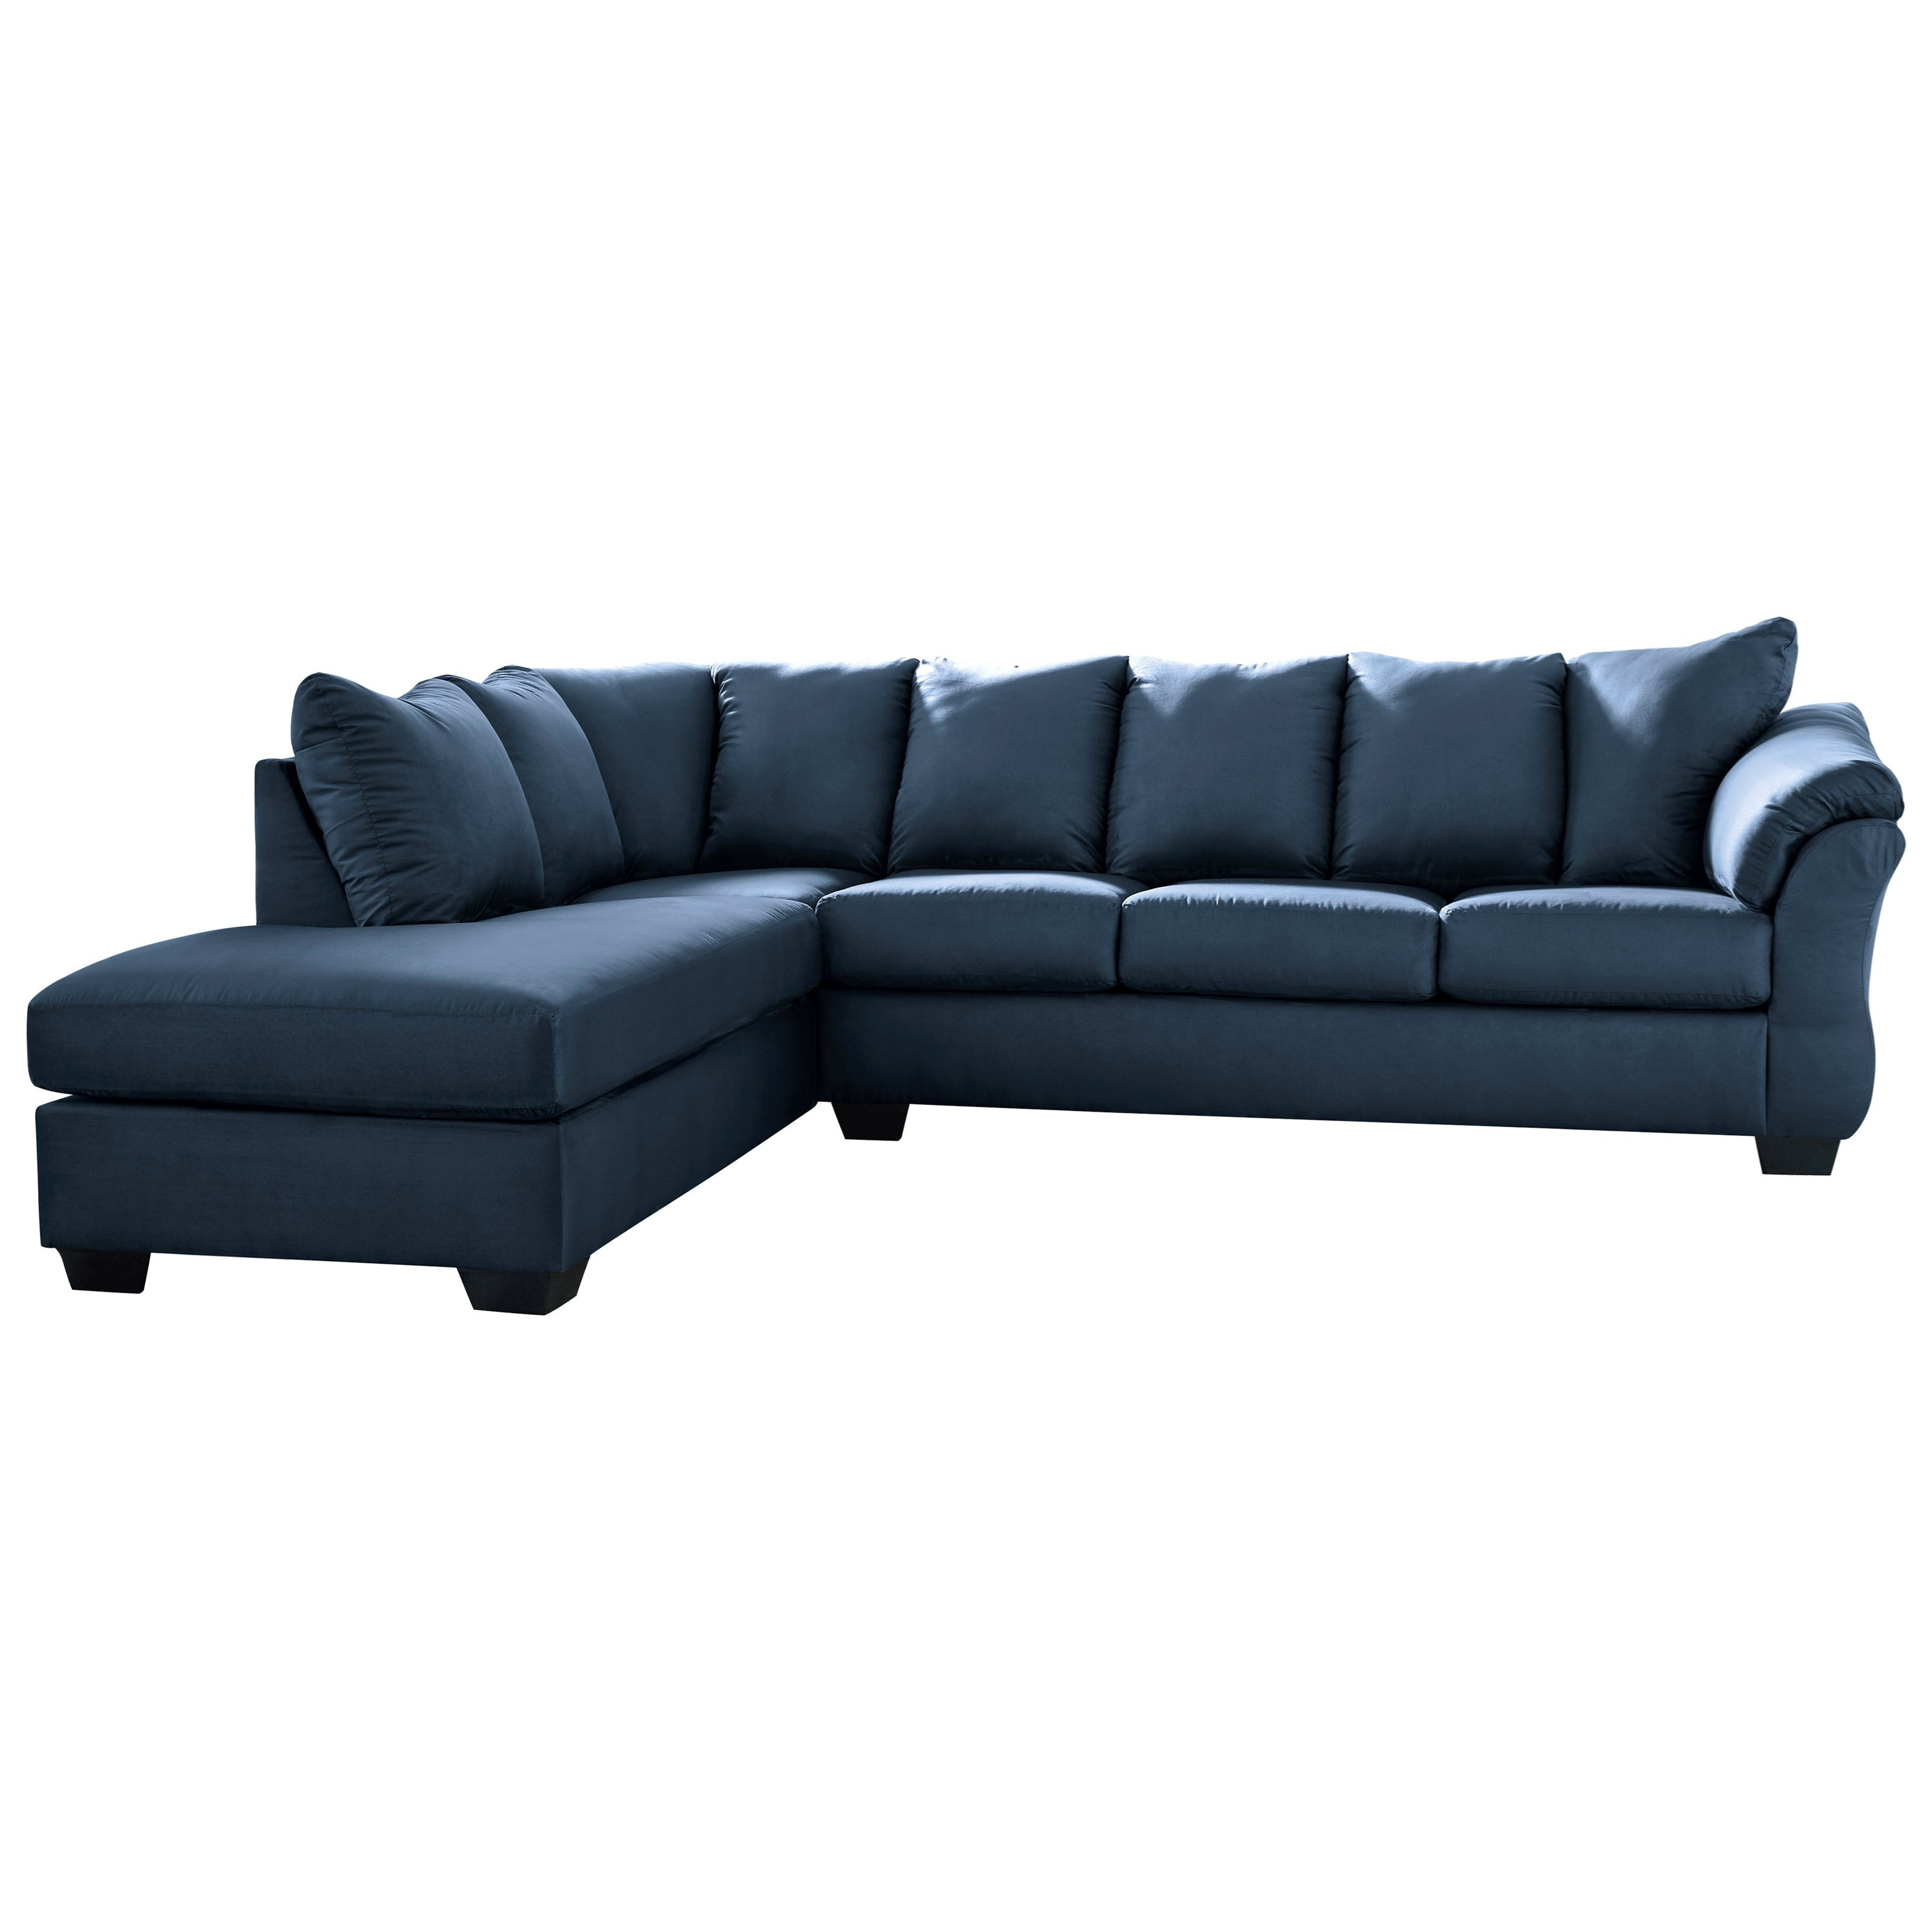 Darcy - Blue 2-Piece Sectional Sofa with Chaise by Ashley (Signature Design) at Johnny Janosik